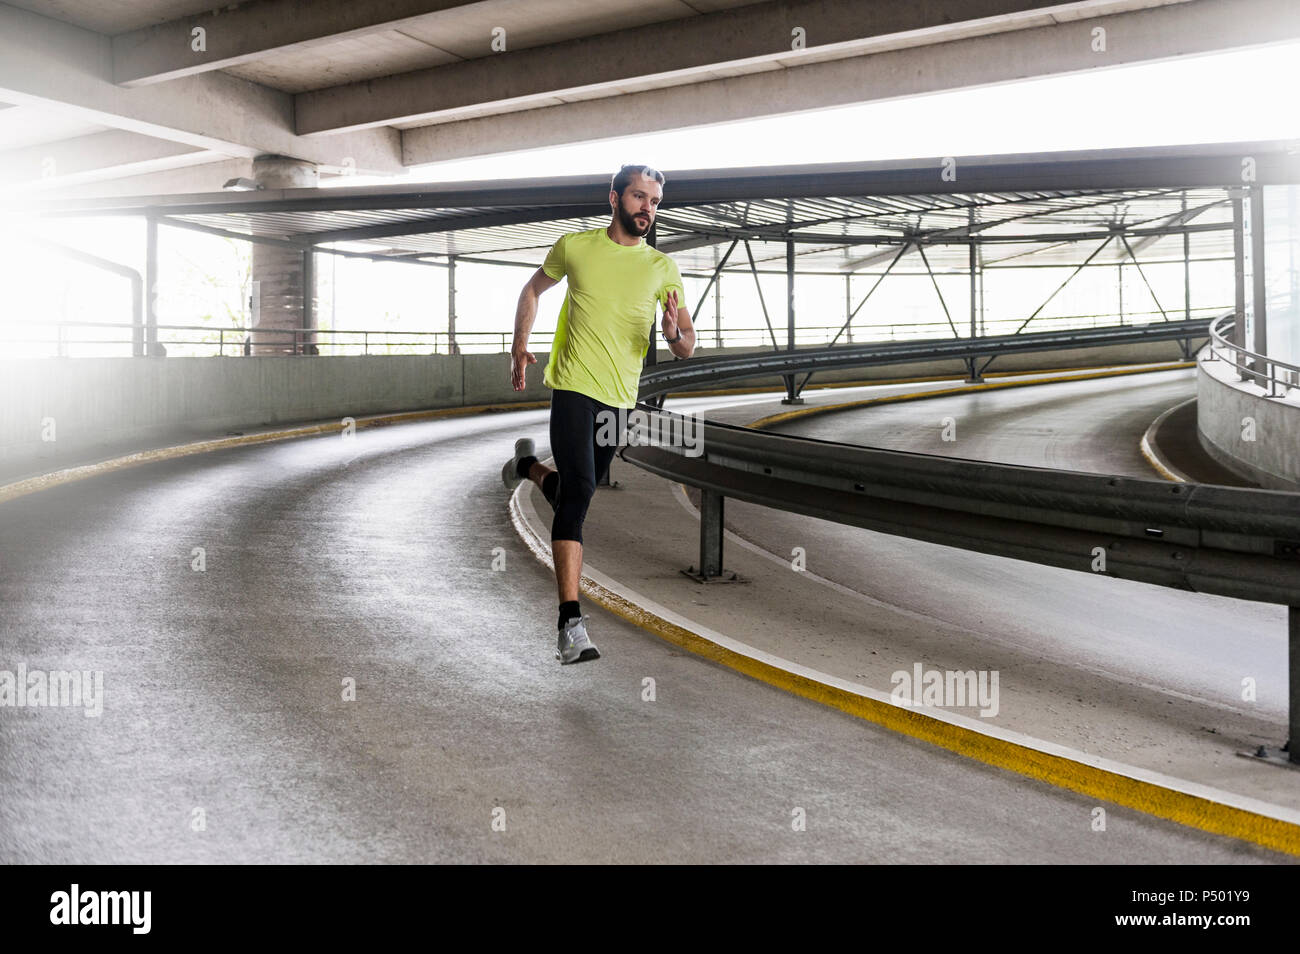 Man running in parking garage in a curve - Stock Image